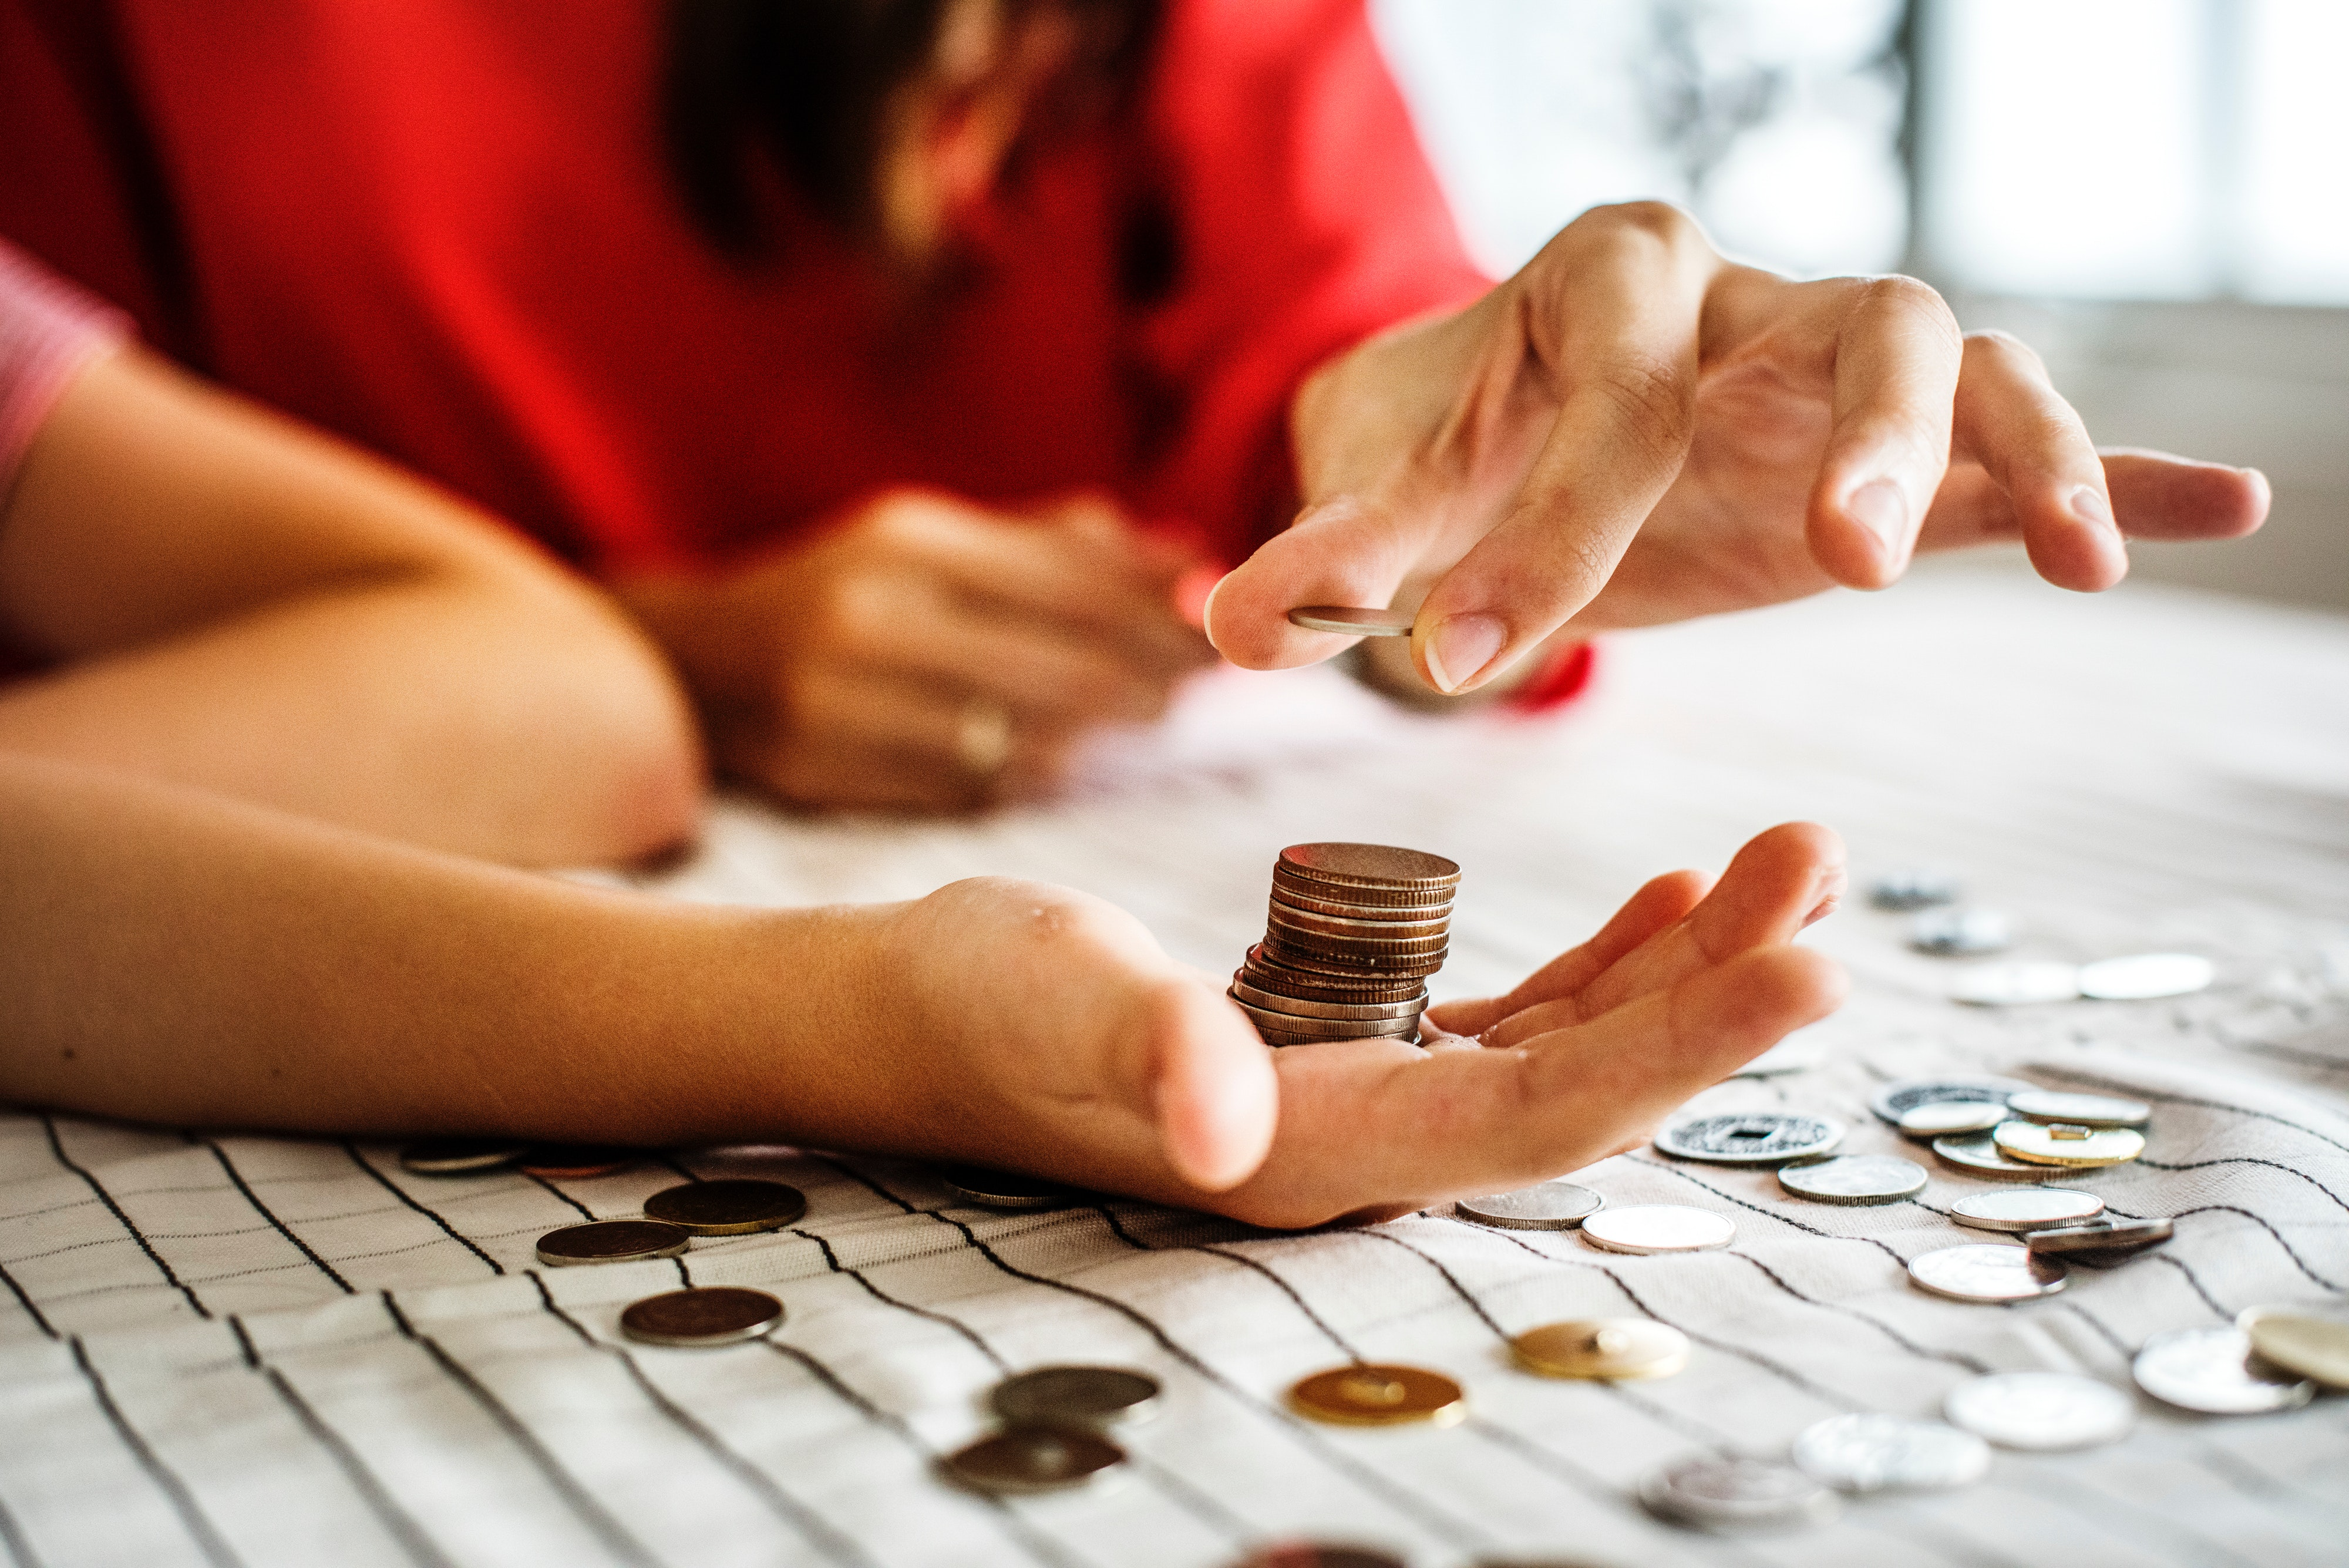 Women counting change